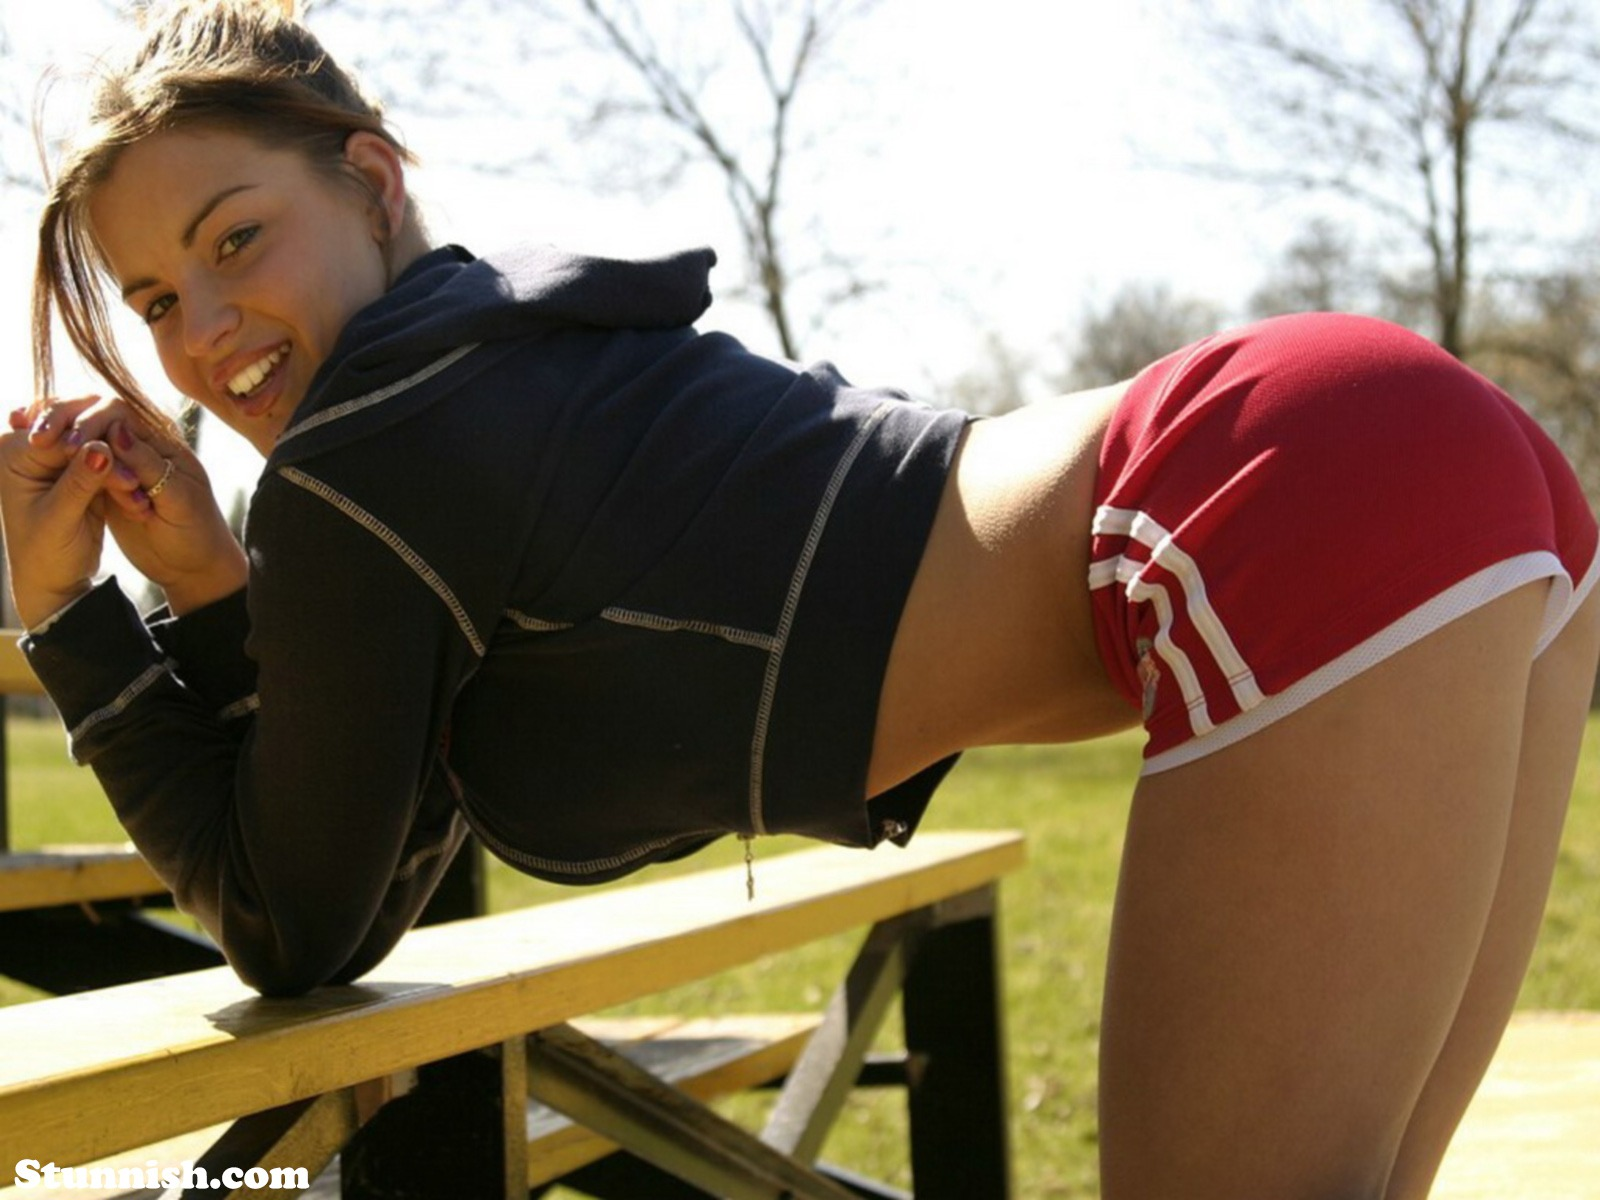 up skirt xhamster free watch and download up skirt NikkiLeigh Shorts Fitness Playboy